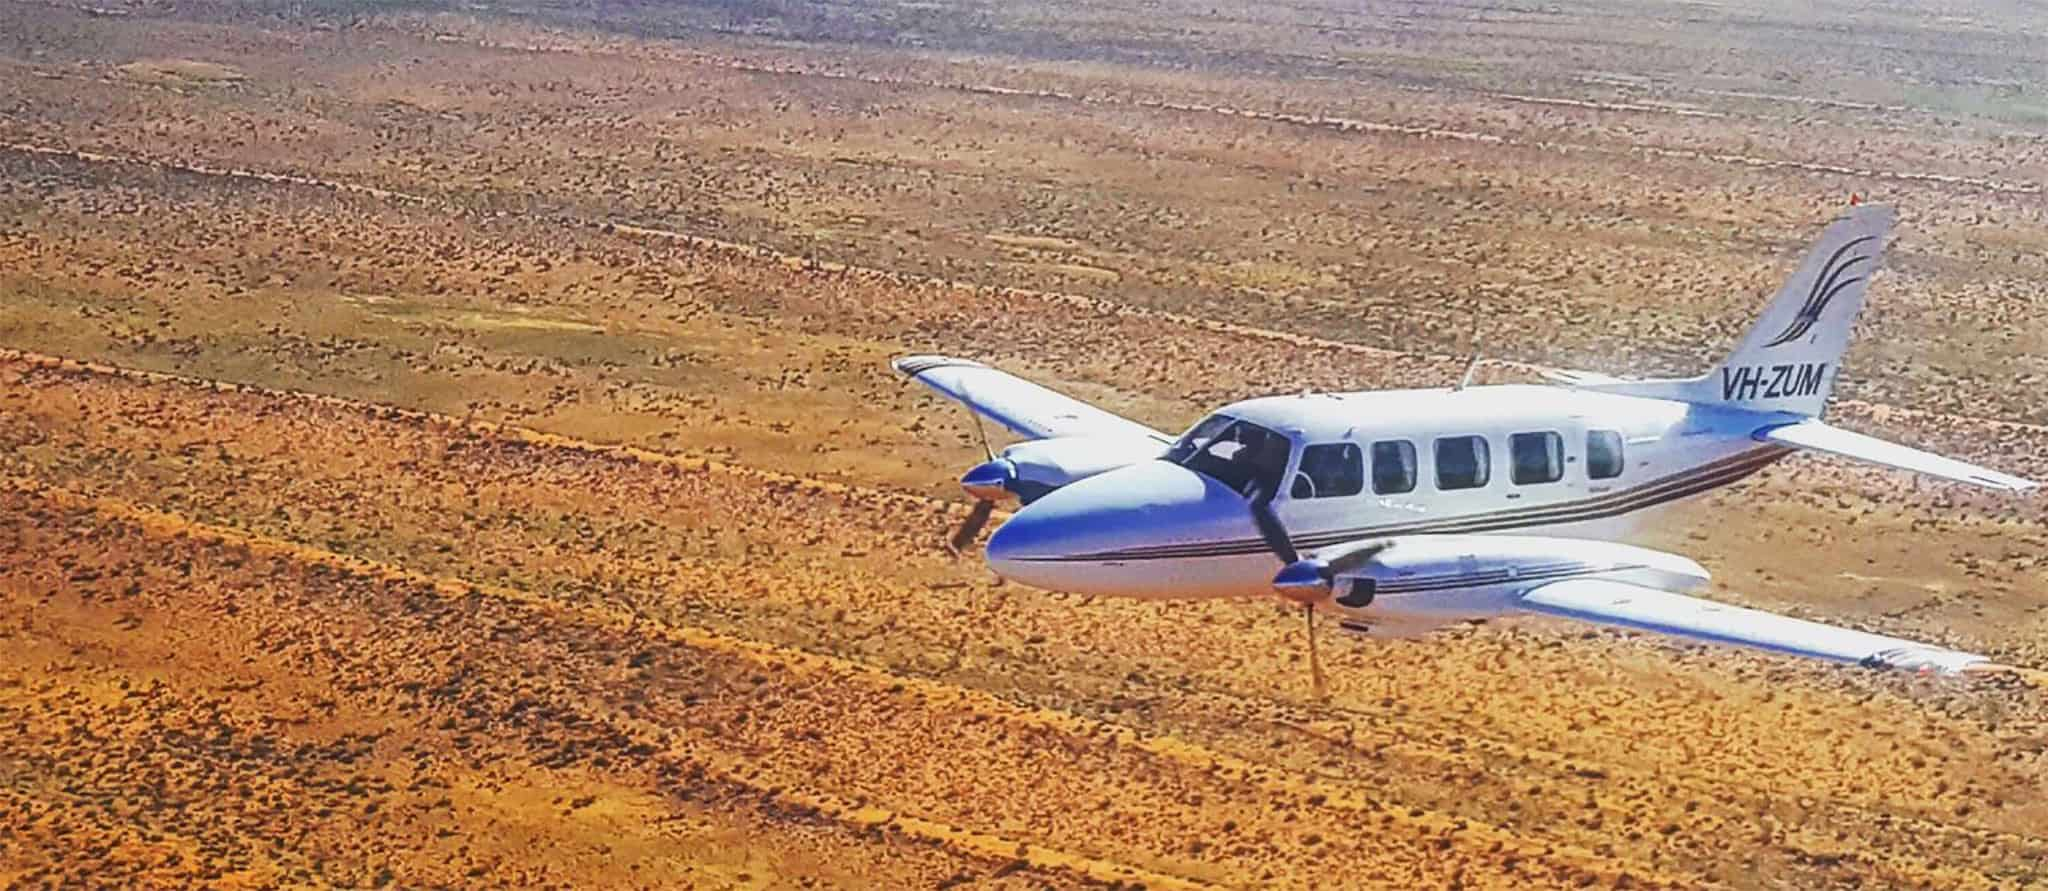 Kirkhope Aviation Chieftain Outback From The Air 6657